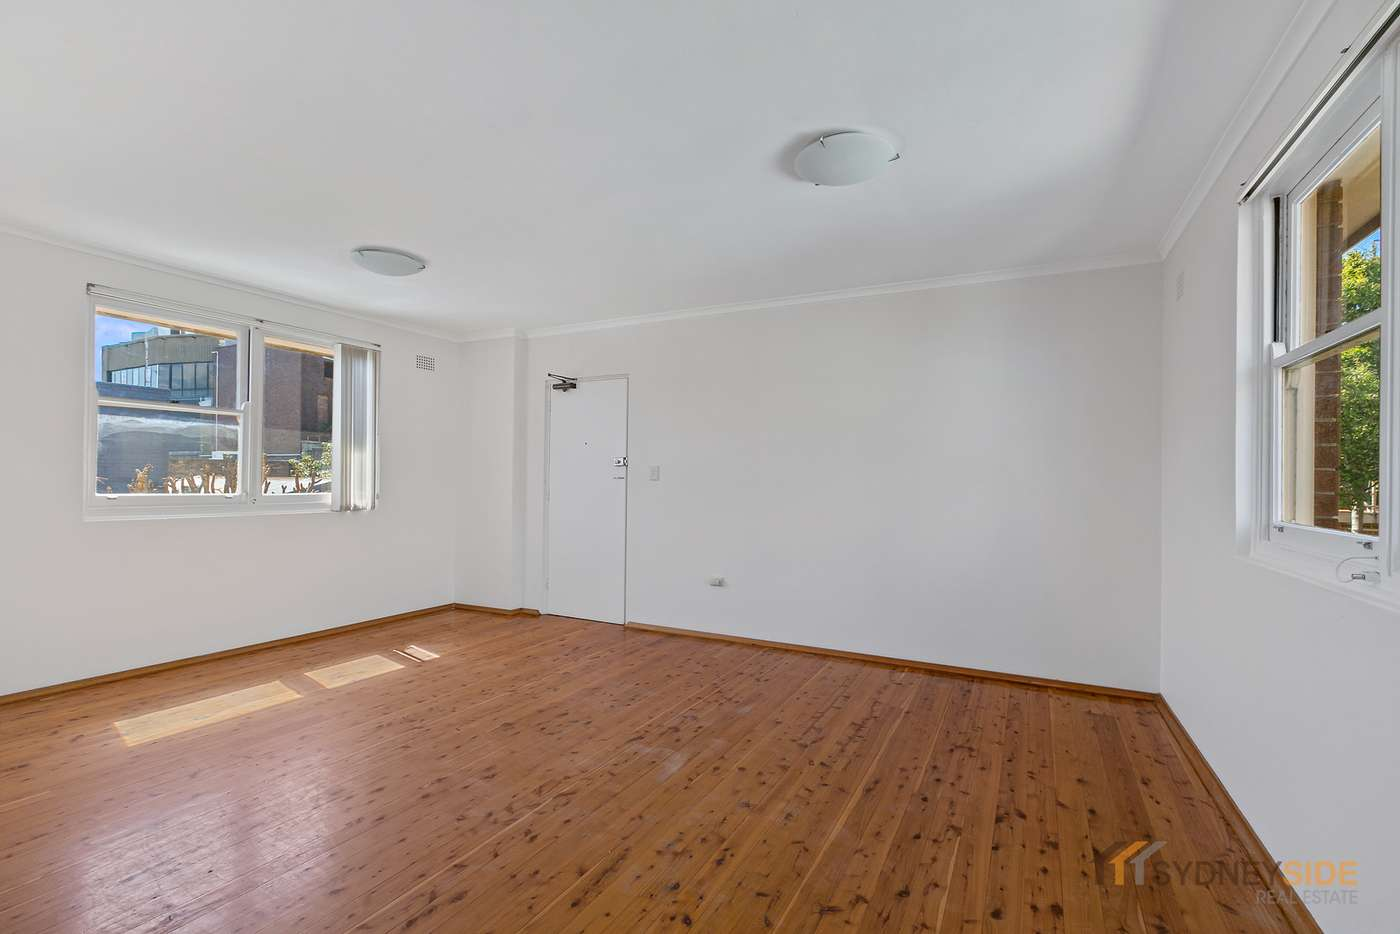 Main view of Homely apartment listing, 4/100 Carrington Rd, Waverley NSW 2024